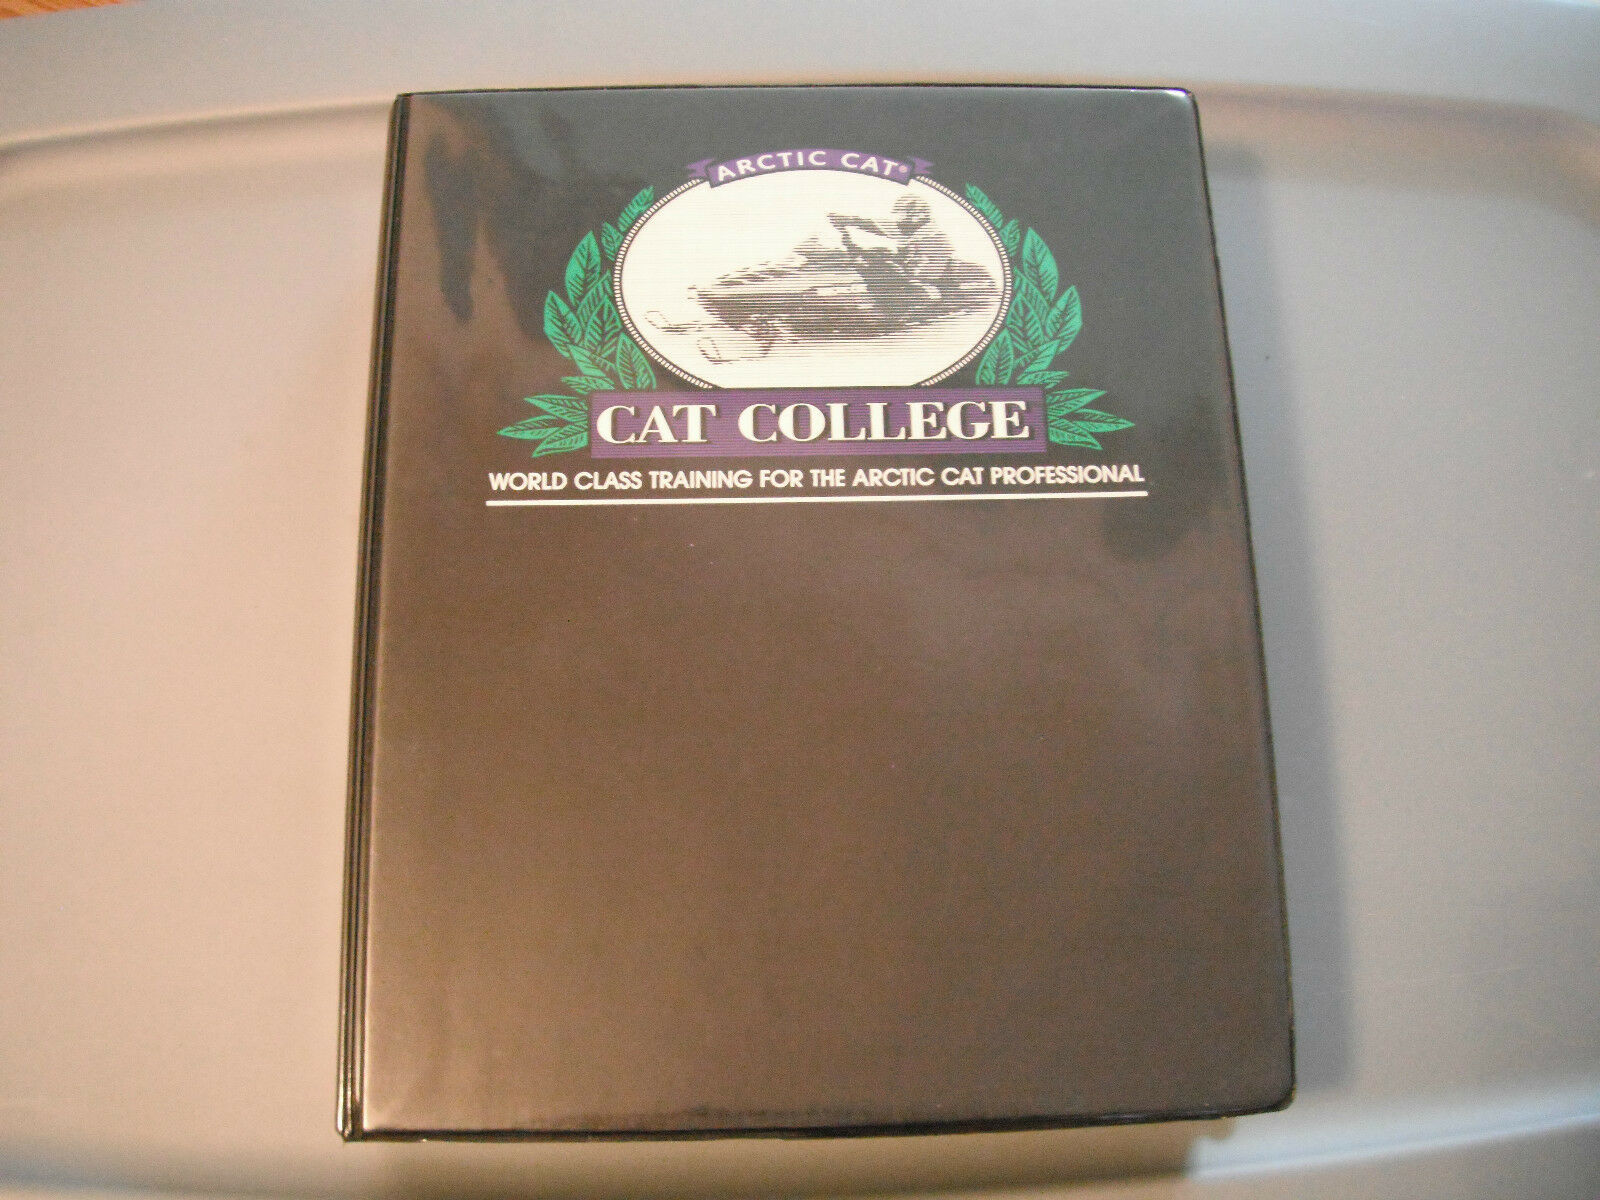 Arctic Cat  Cat College  Training Kit VHS Tapes and Manuals